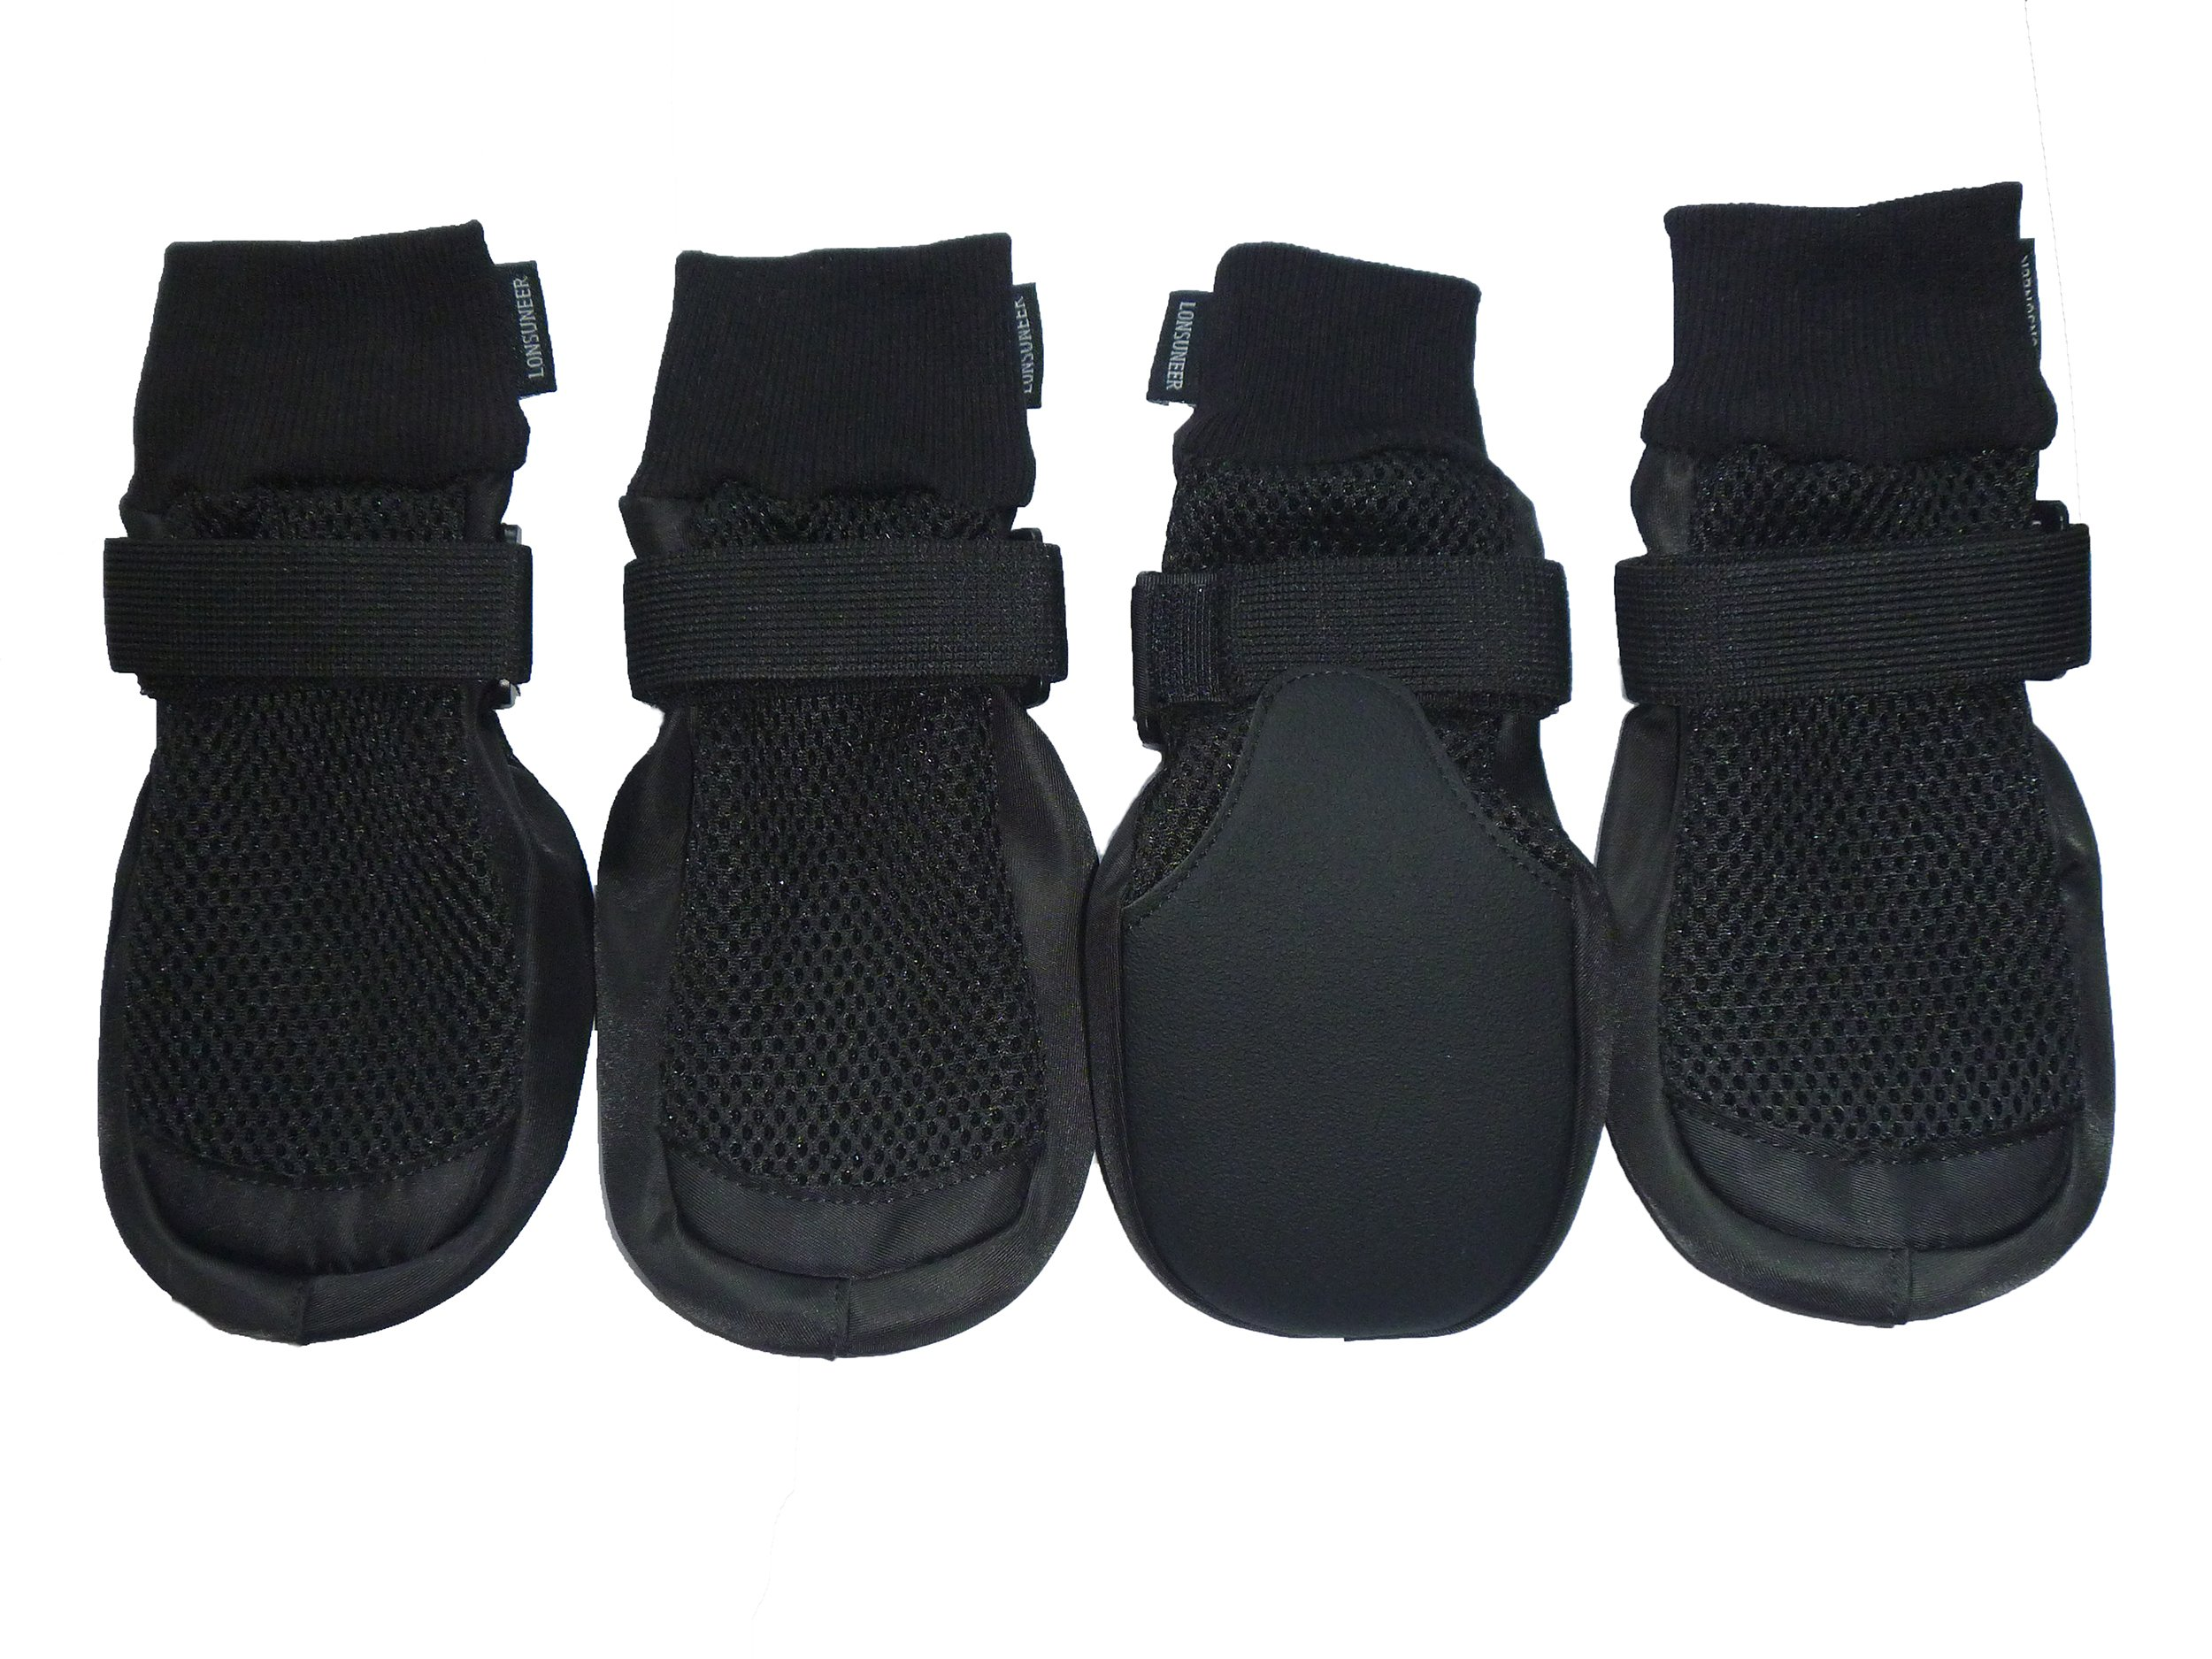 LONSUNEER Paw Protector Dog Boots Breathable Nonslip and Soft Black Color Size M L Xl (X-large - Inner Sole Width 3.15'')